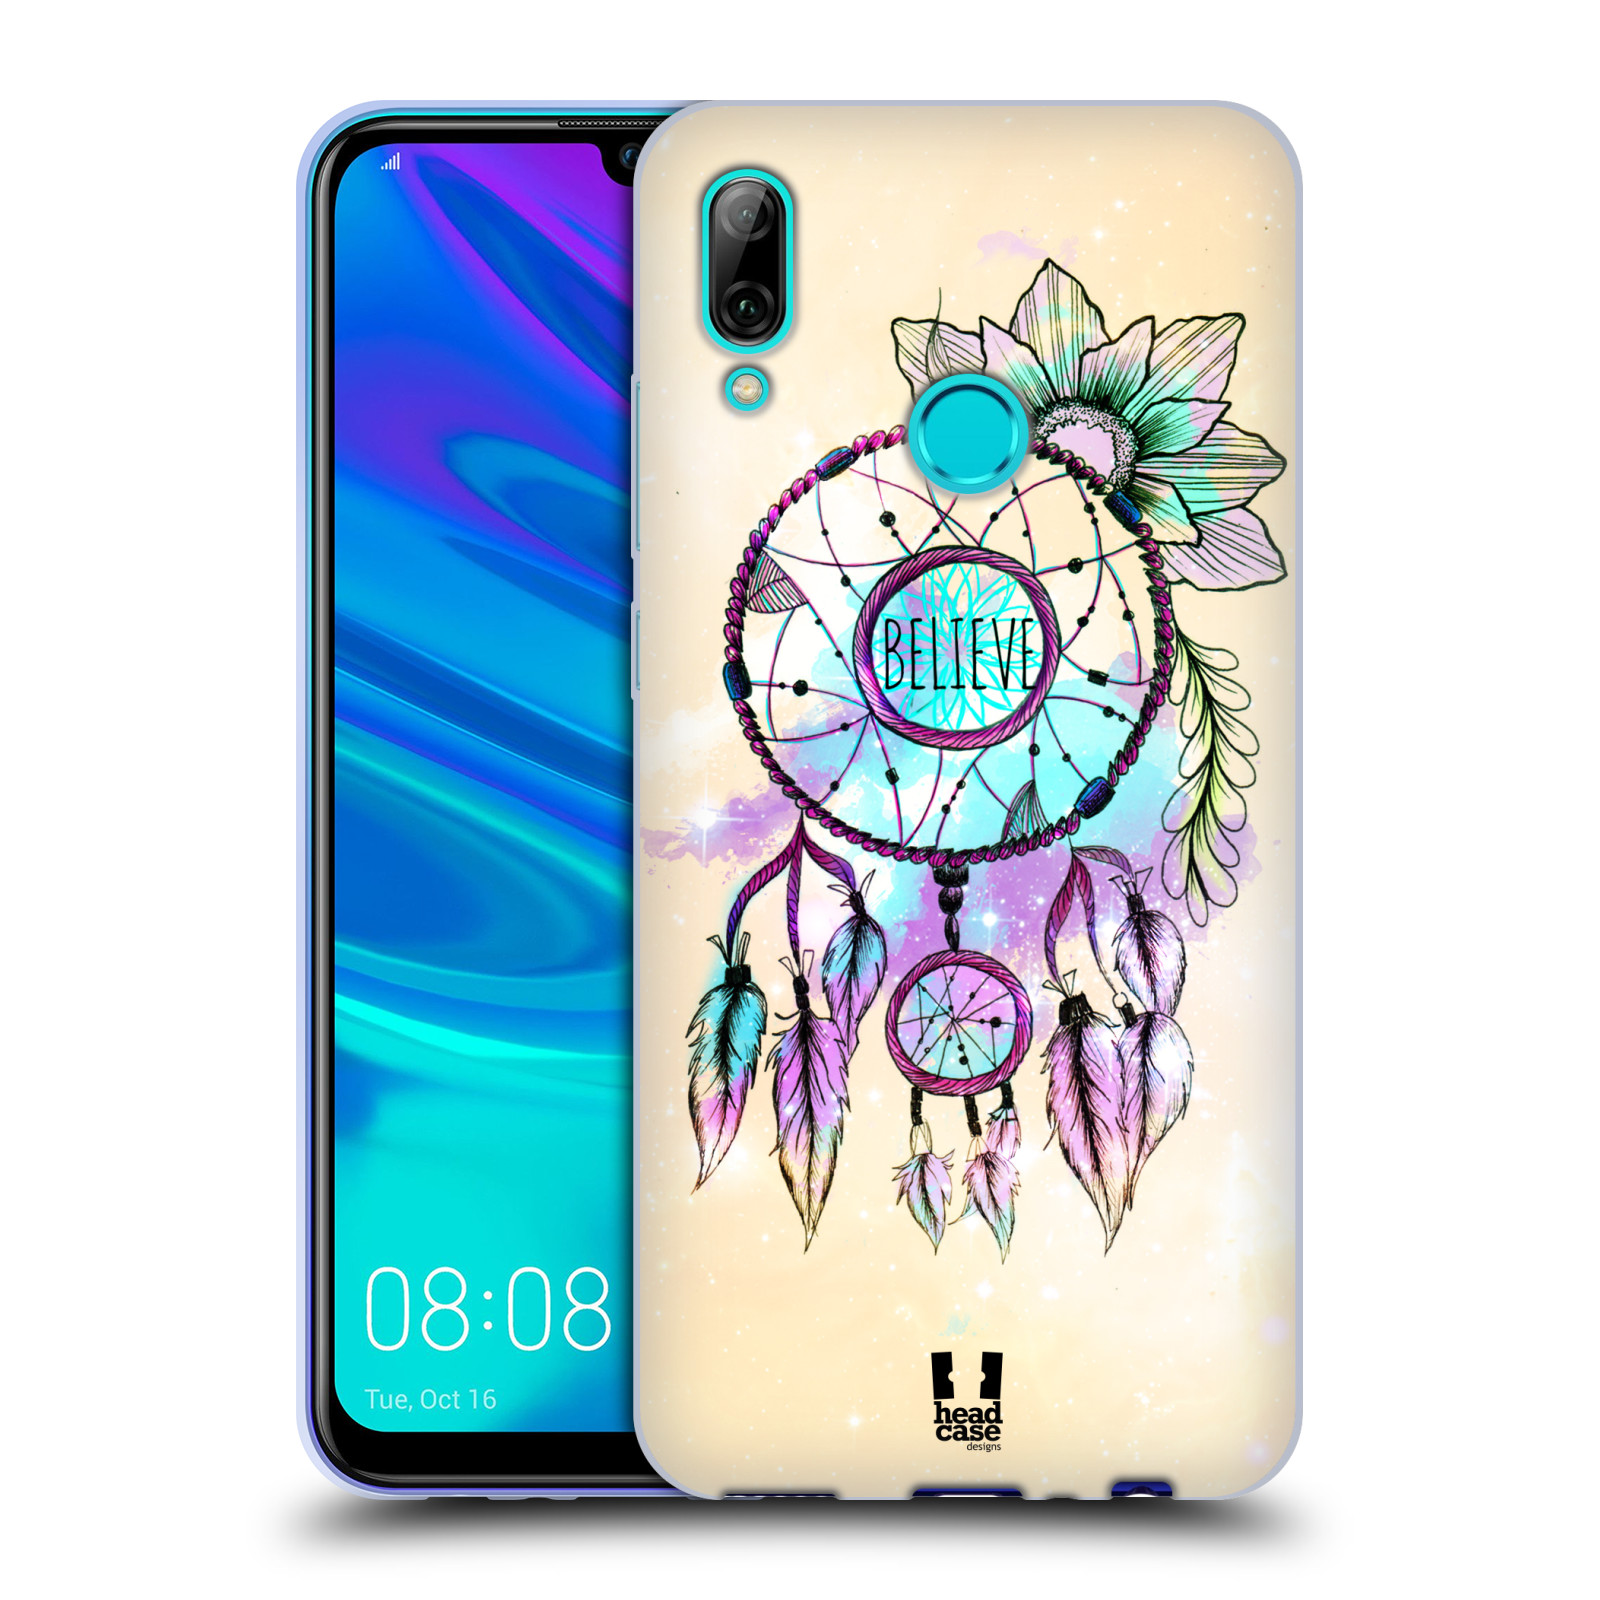 Silikonové pouzdro na mobil Honor 10 Lite - Head Case - MIX BELIEVE